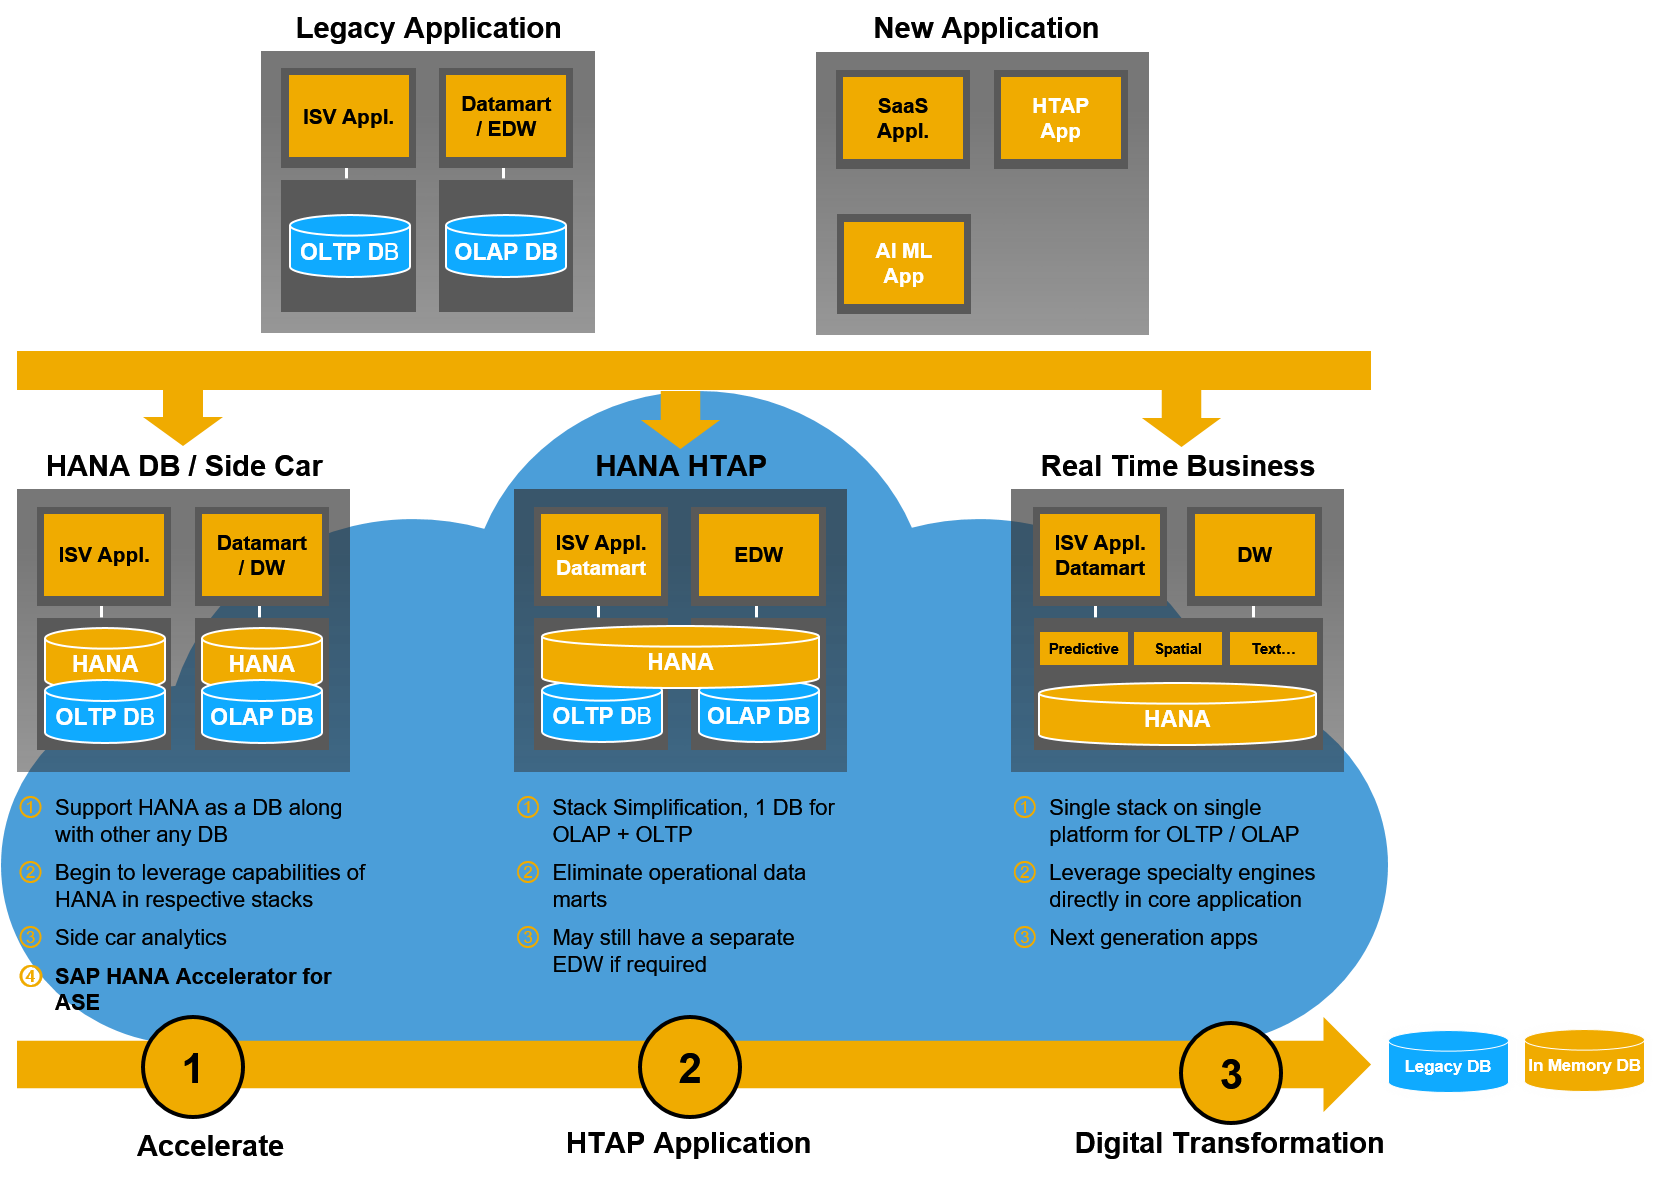 SAP HANA adoption scenarios for ISV's